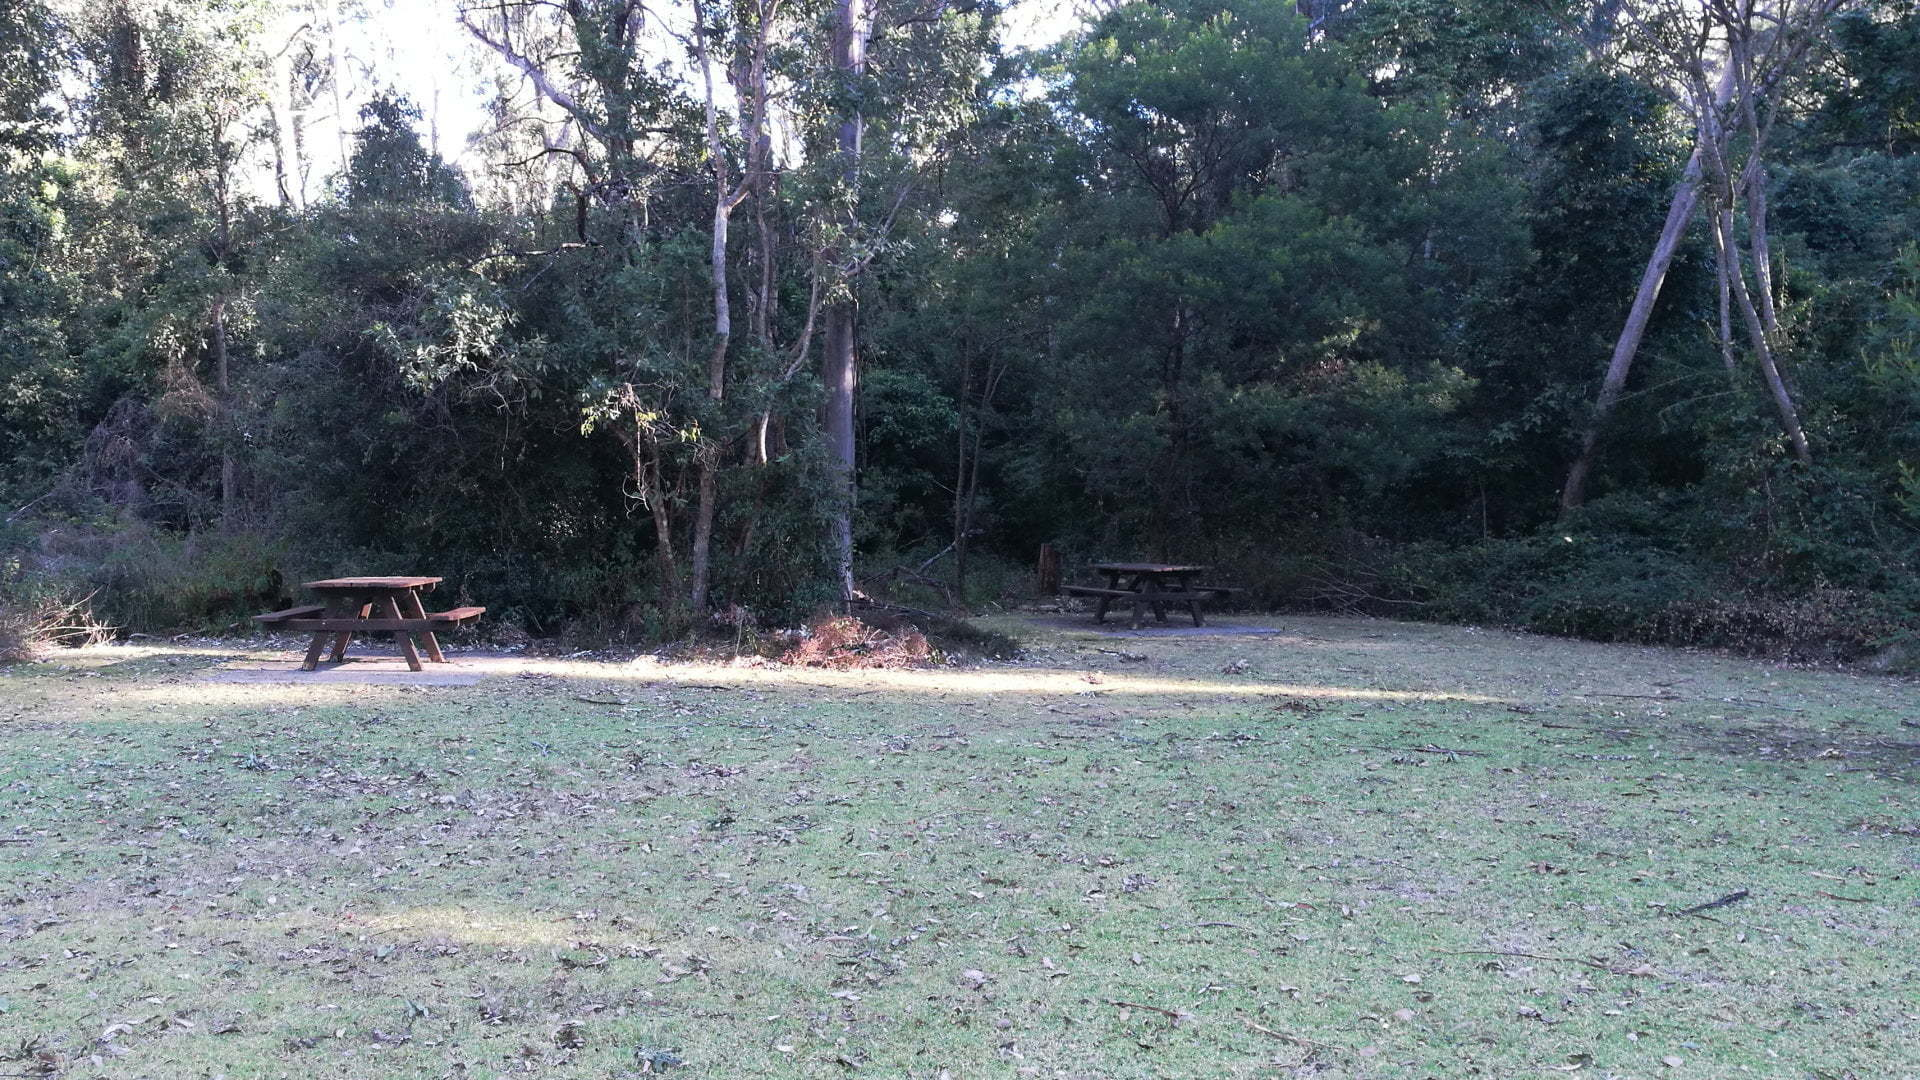 Main Range National Park Picnic Area, open grass with picnic tables and bush behind